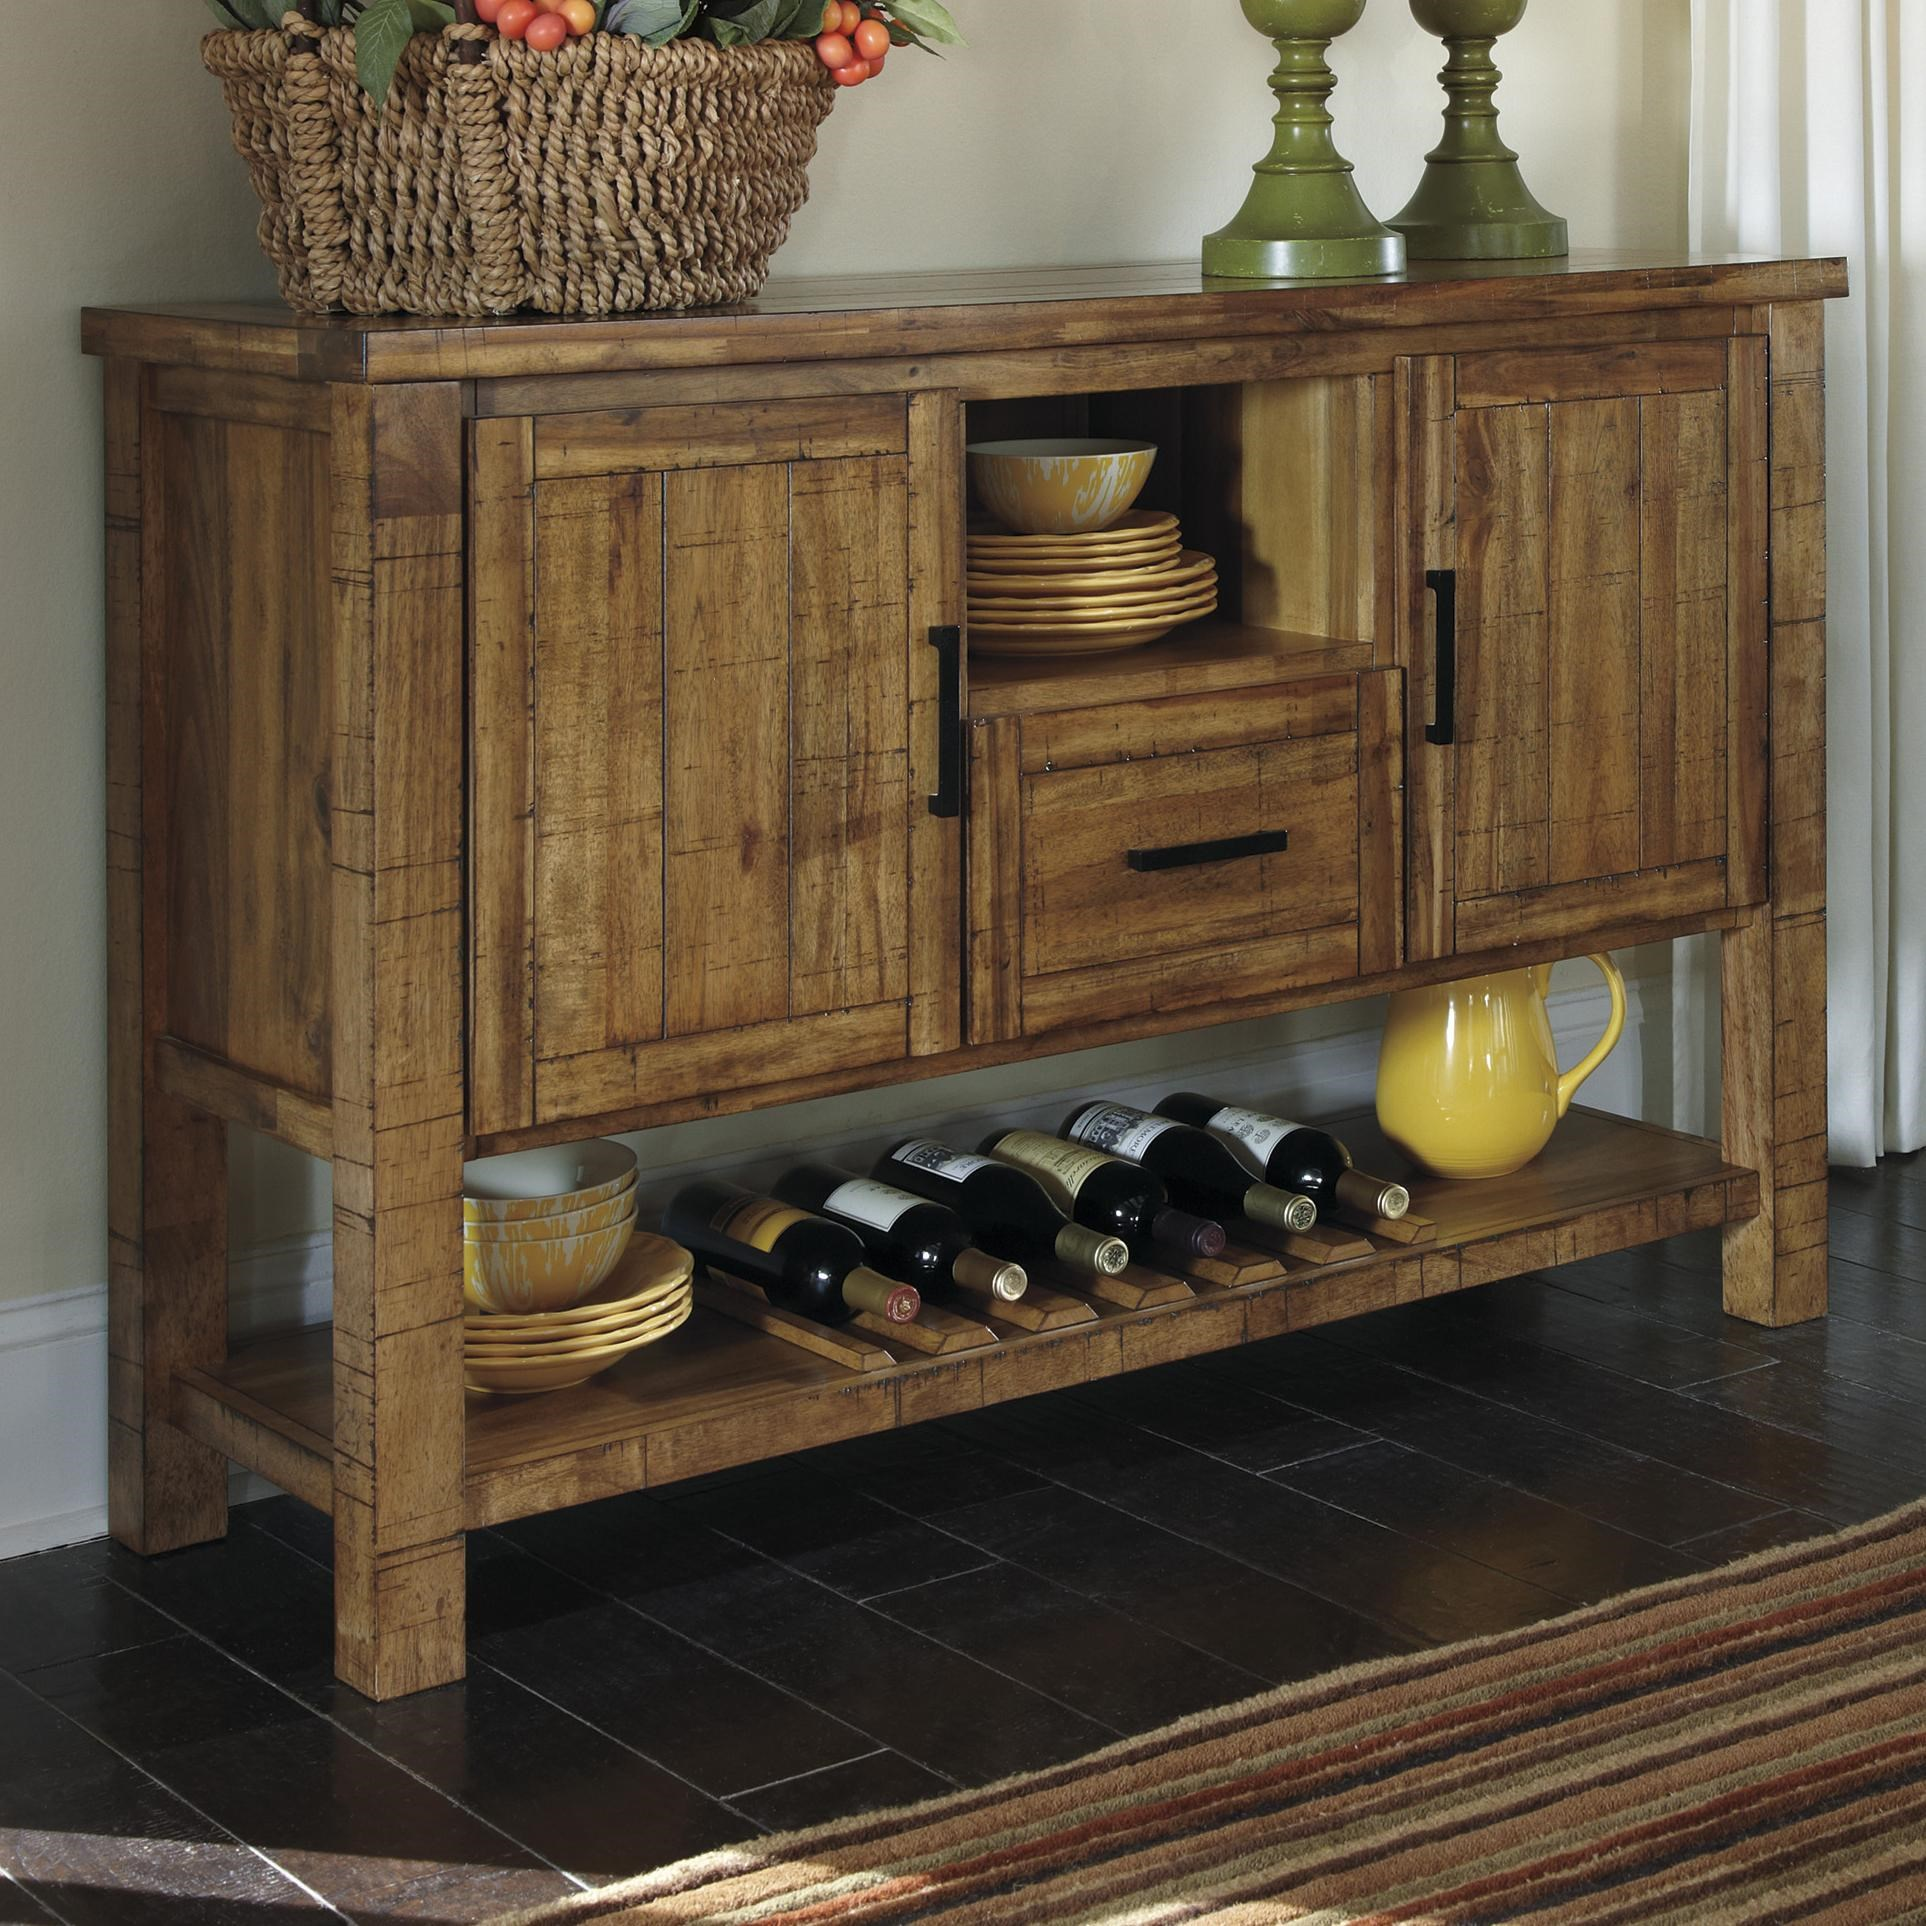 Signature Design By Ashley Krinden Rustic Dining Room Server With Wine Rack